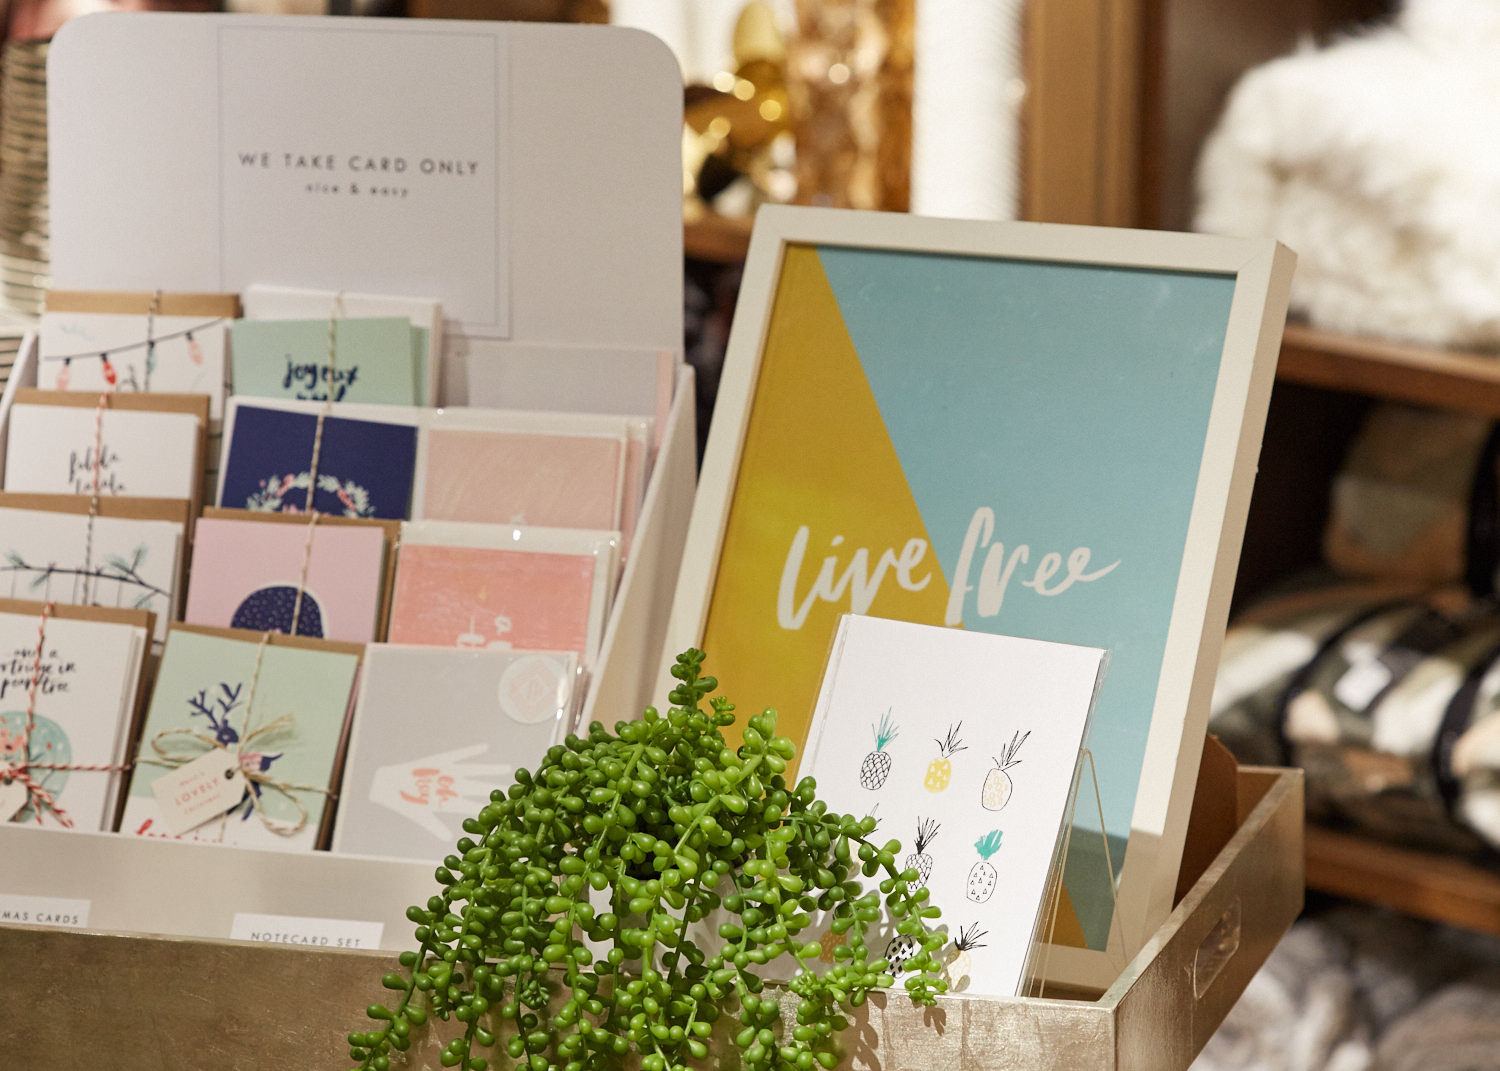 The Lovely Drawer 's stand / Photo:  Yeshen Venena